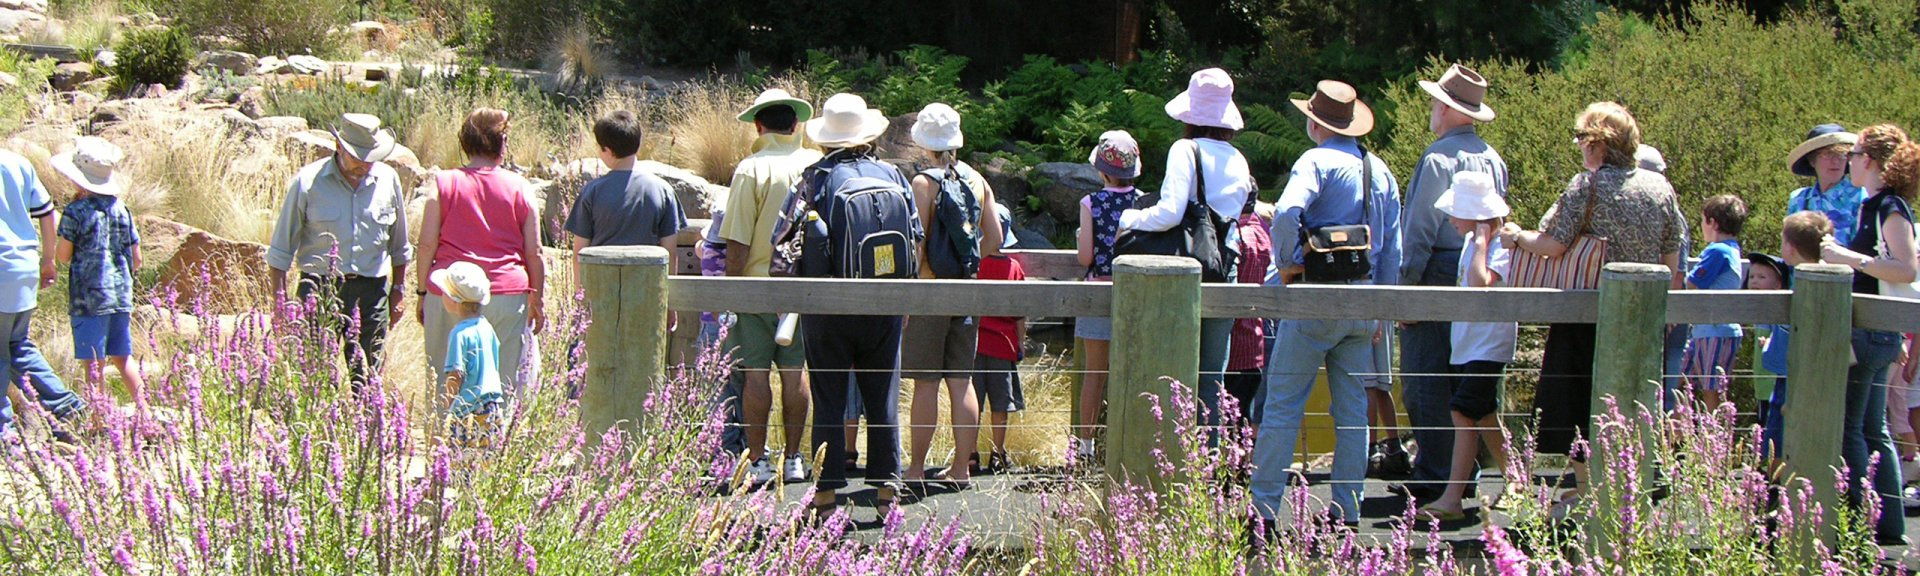 Custom guided walk in the Gardens